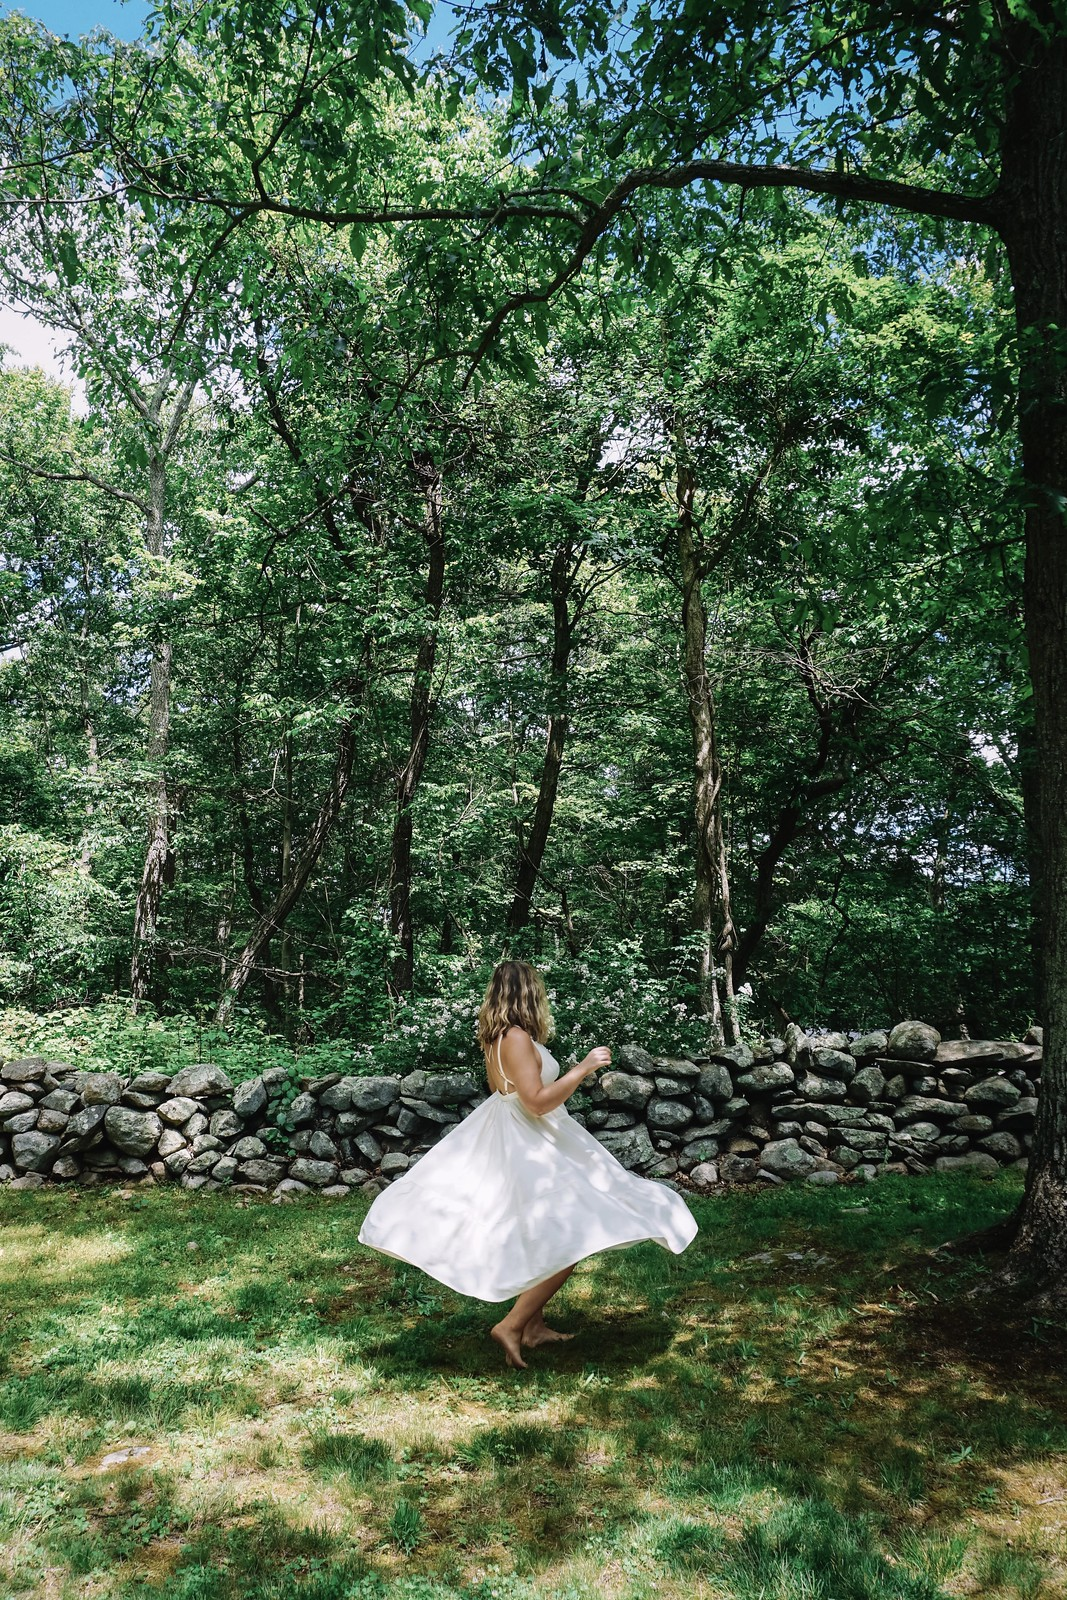 Forest Fairy | Urban Outfitters White Midi Dress Twirling | Country Girl Summer | The Best Little White Dresses Under $50 for Summer | Summer Outfit Ideas | LWD Little White Dress | Casual Outfit Inspiration